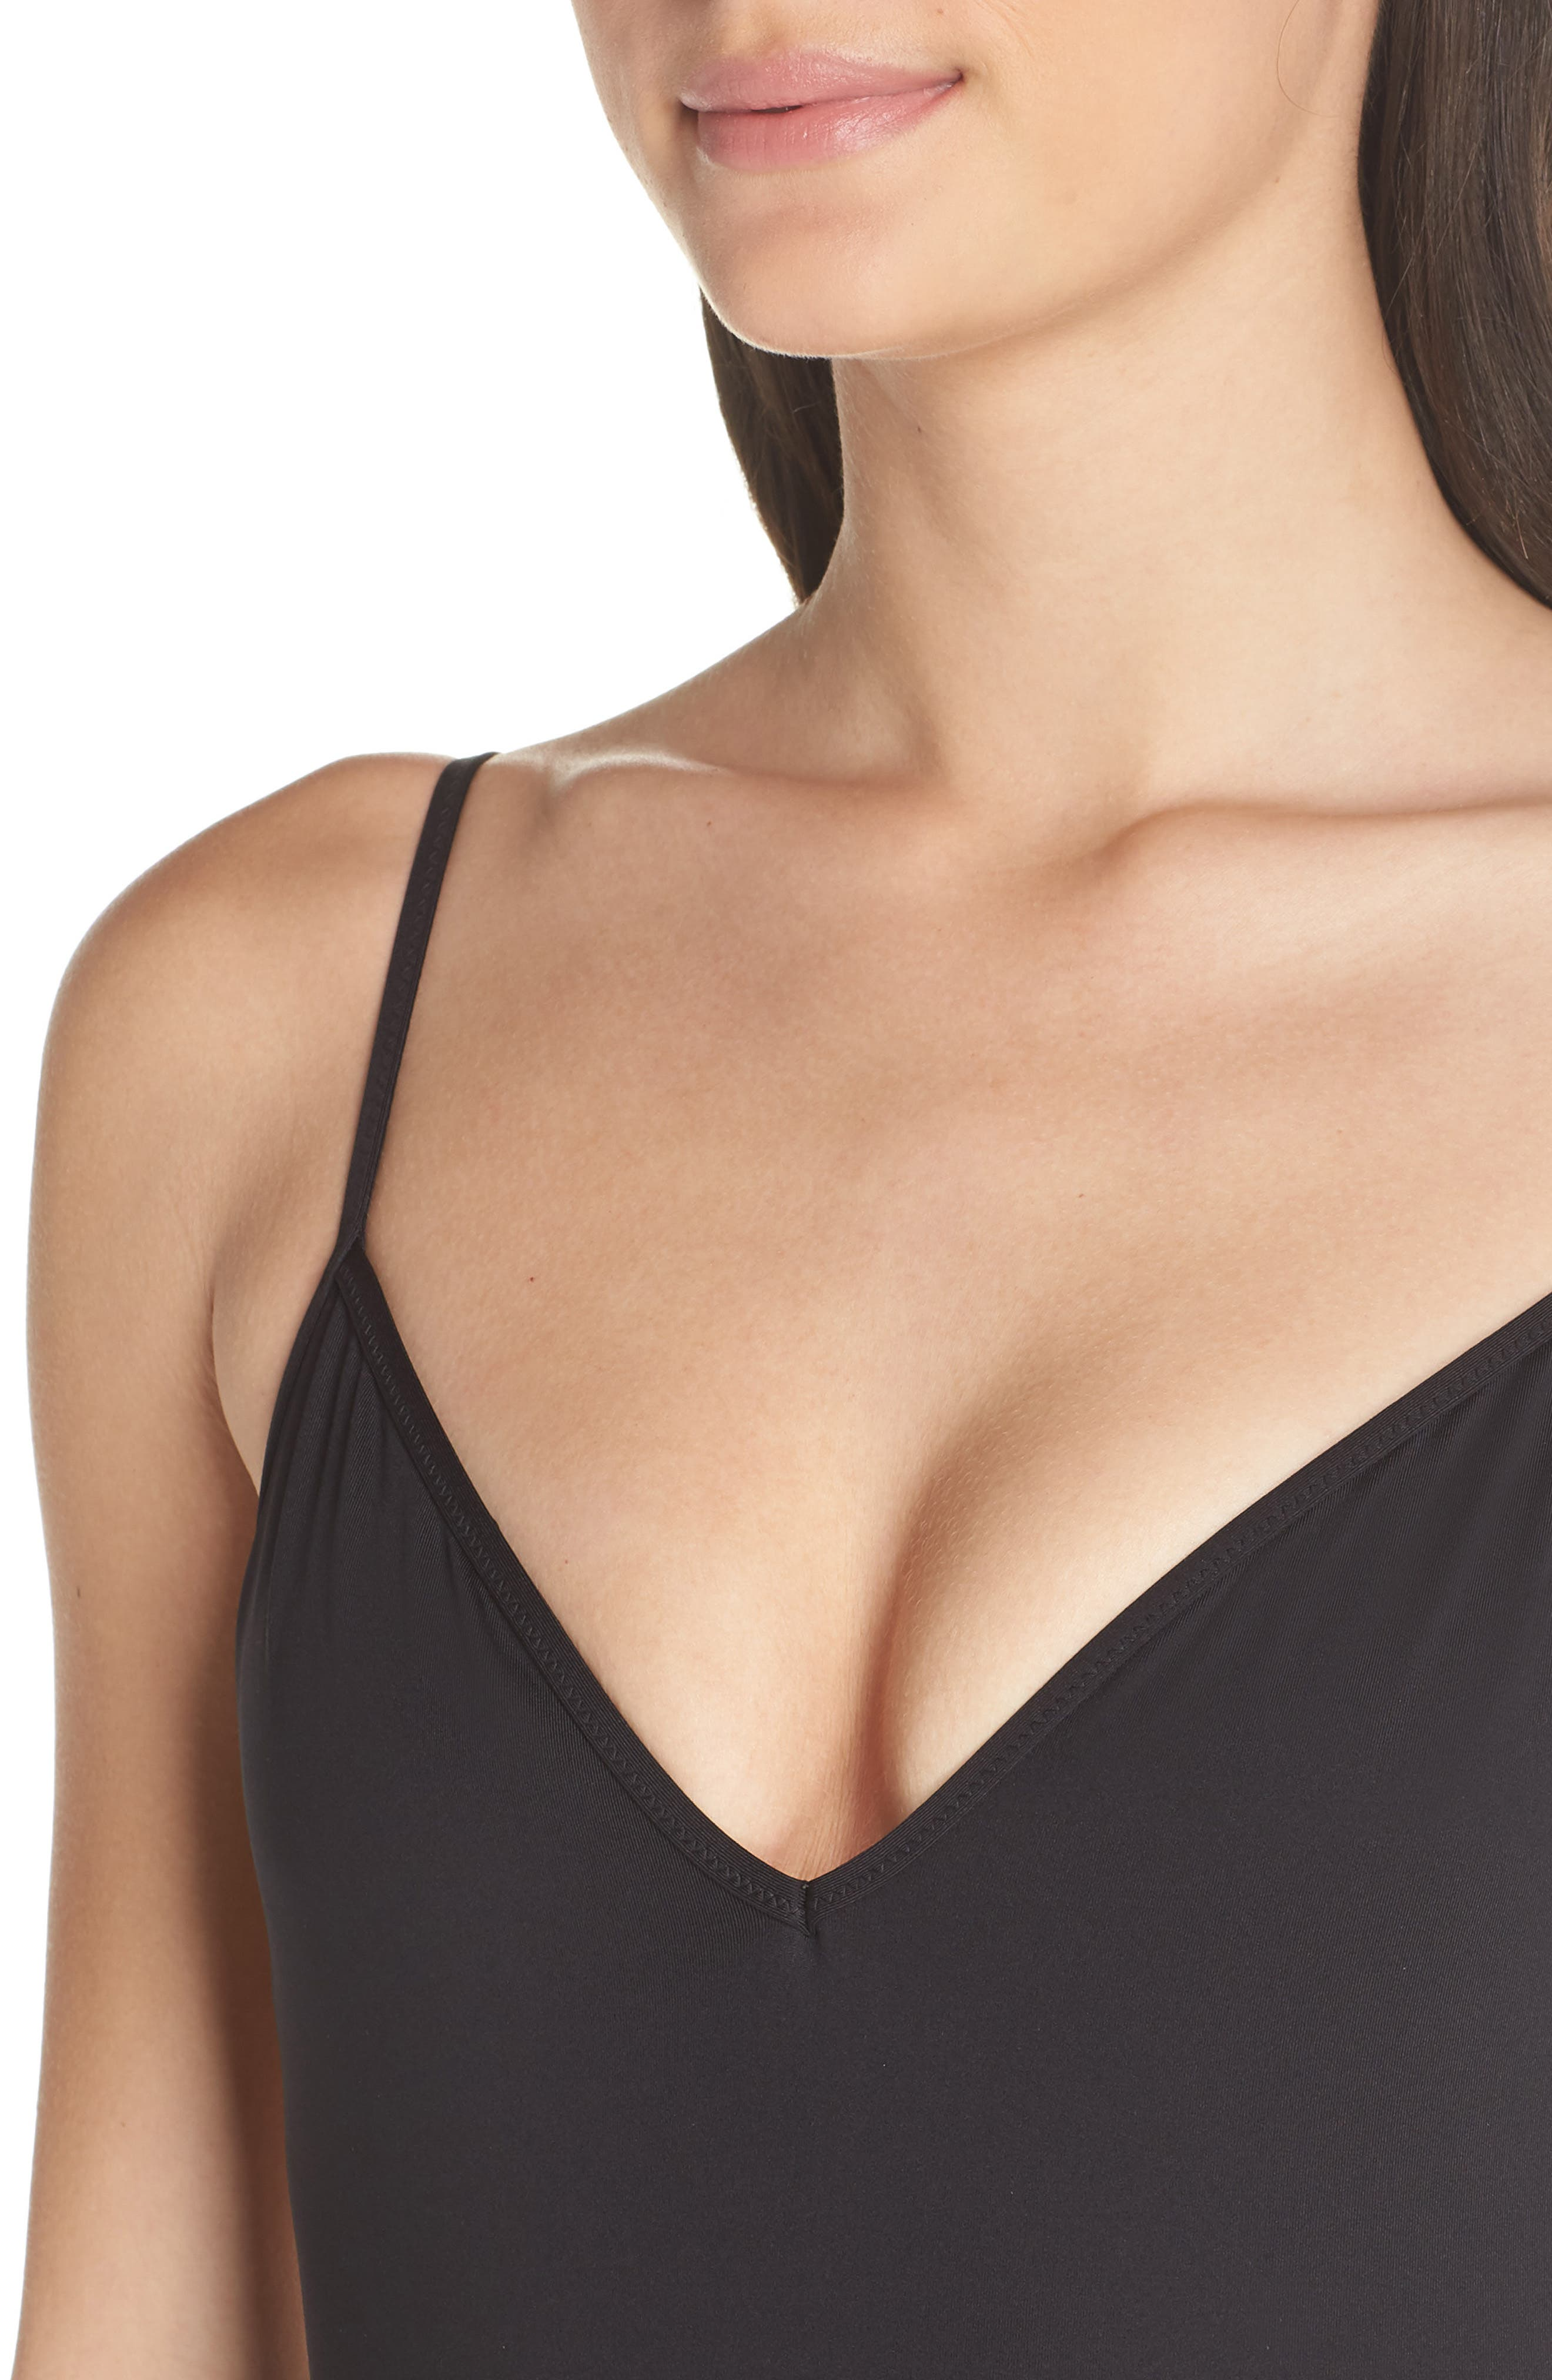 Playa Montauk Strappy One-Piece Swimsuit,                             Alternate thumbnail 7, color,